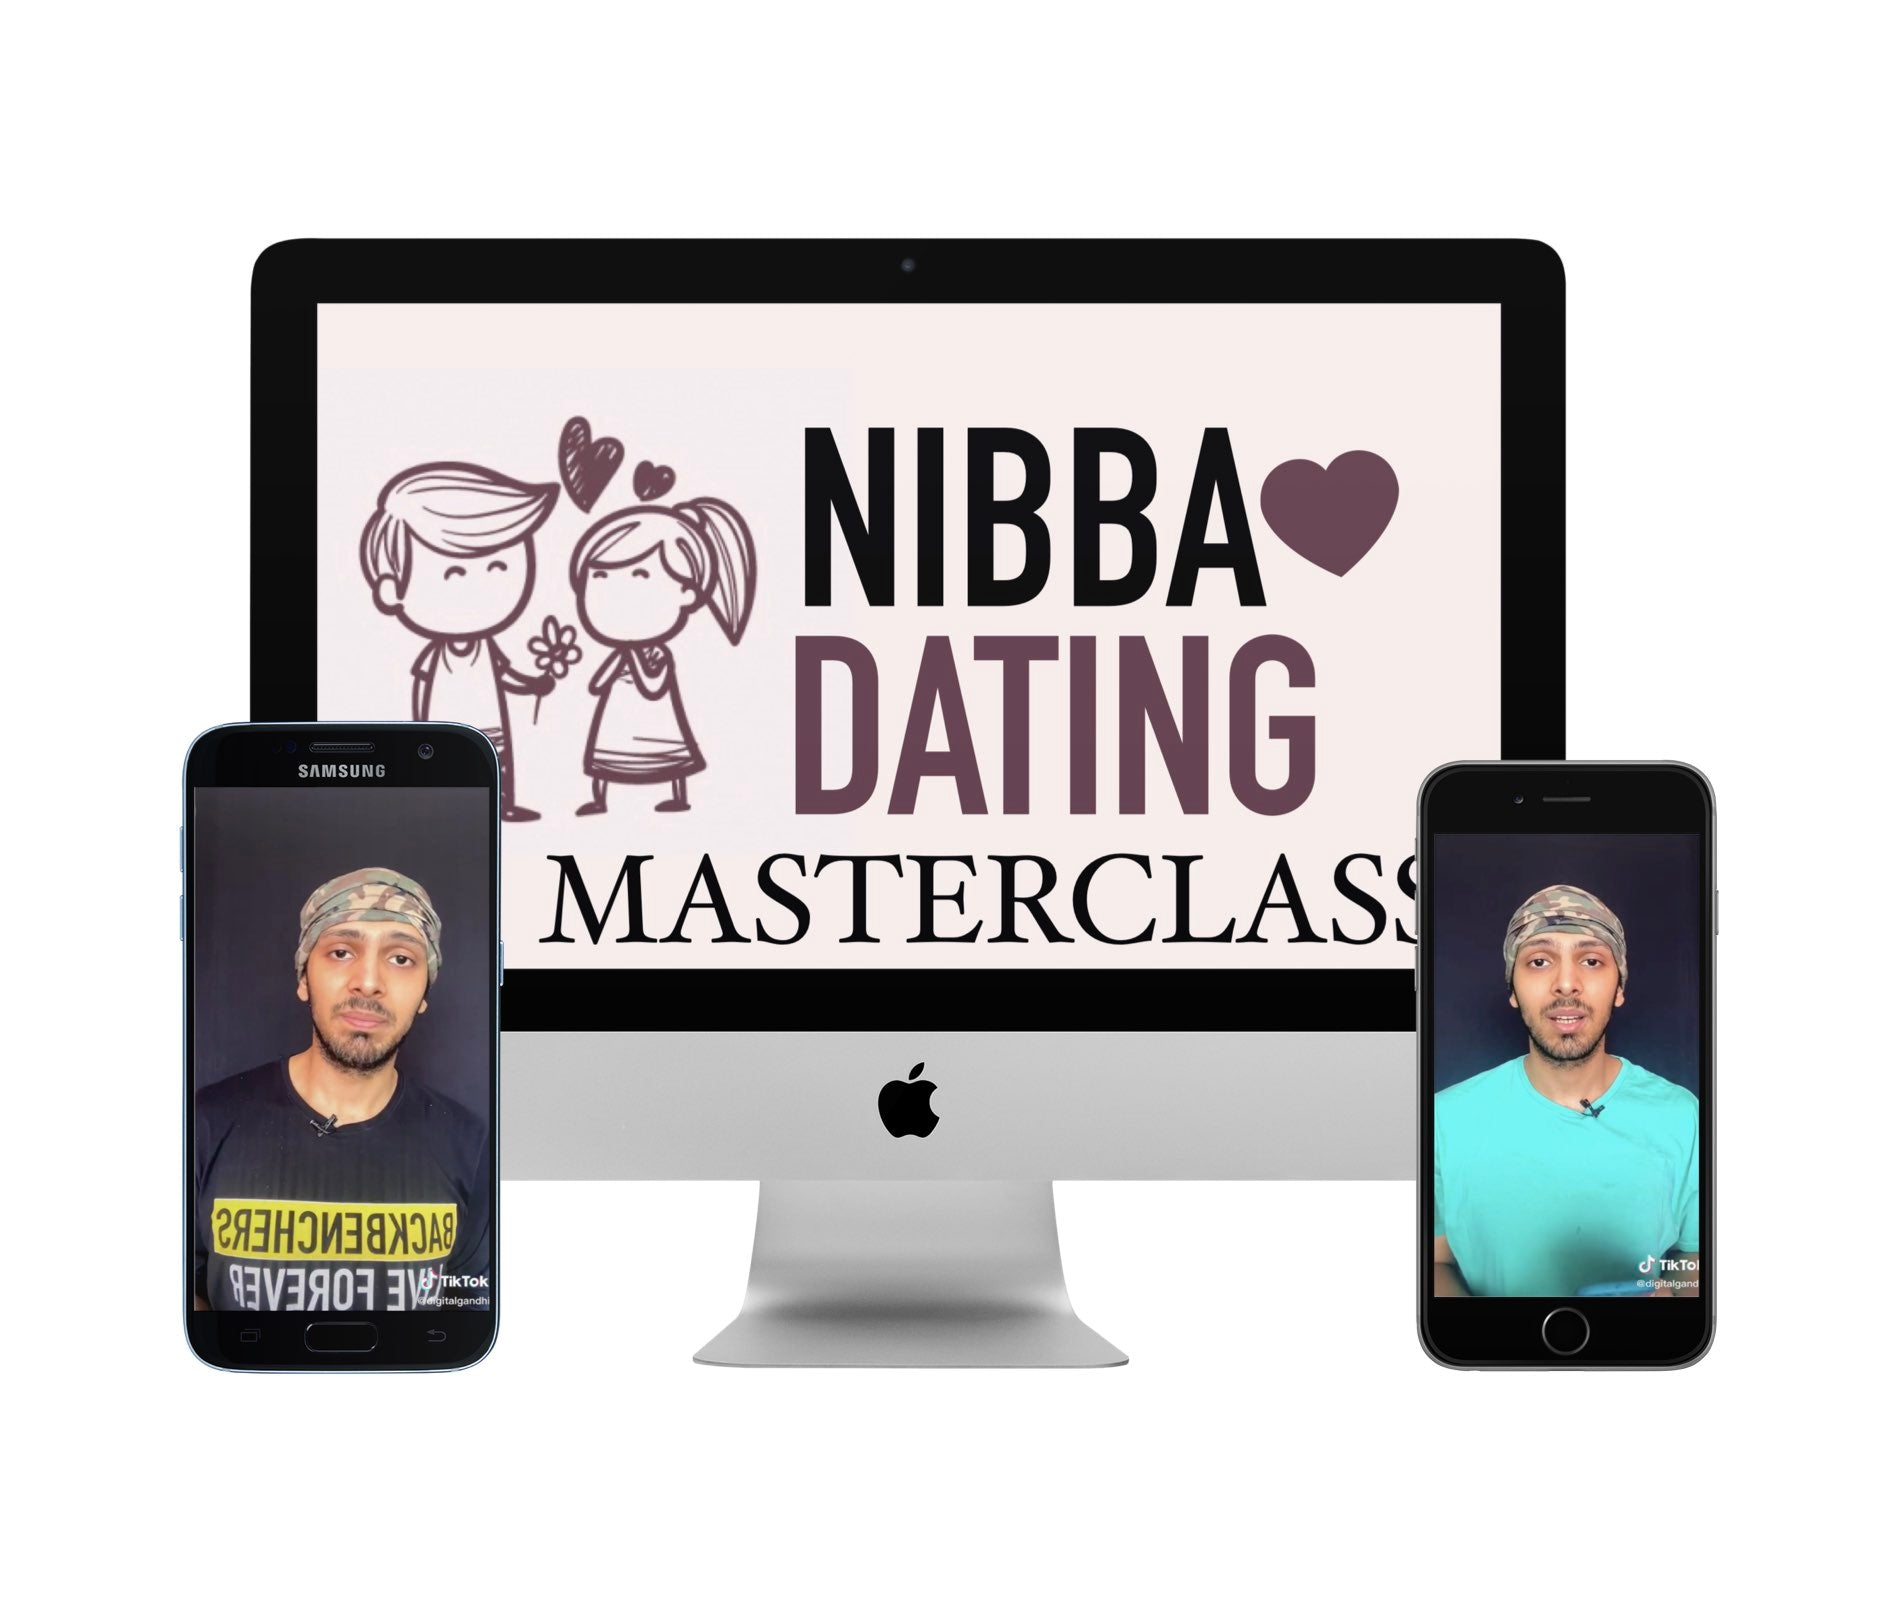 Dating for Nibbis Masterclass by Digital Gandhi